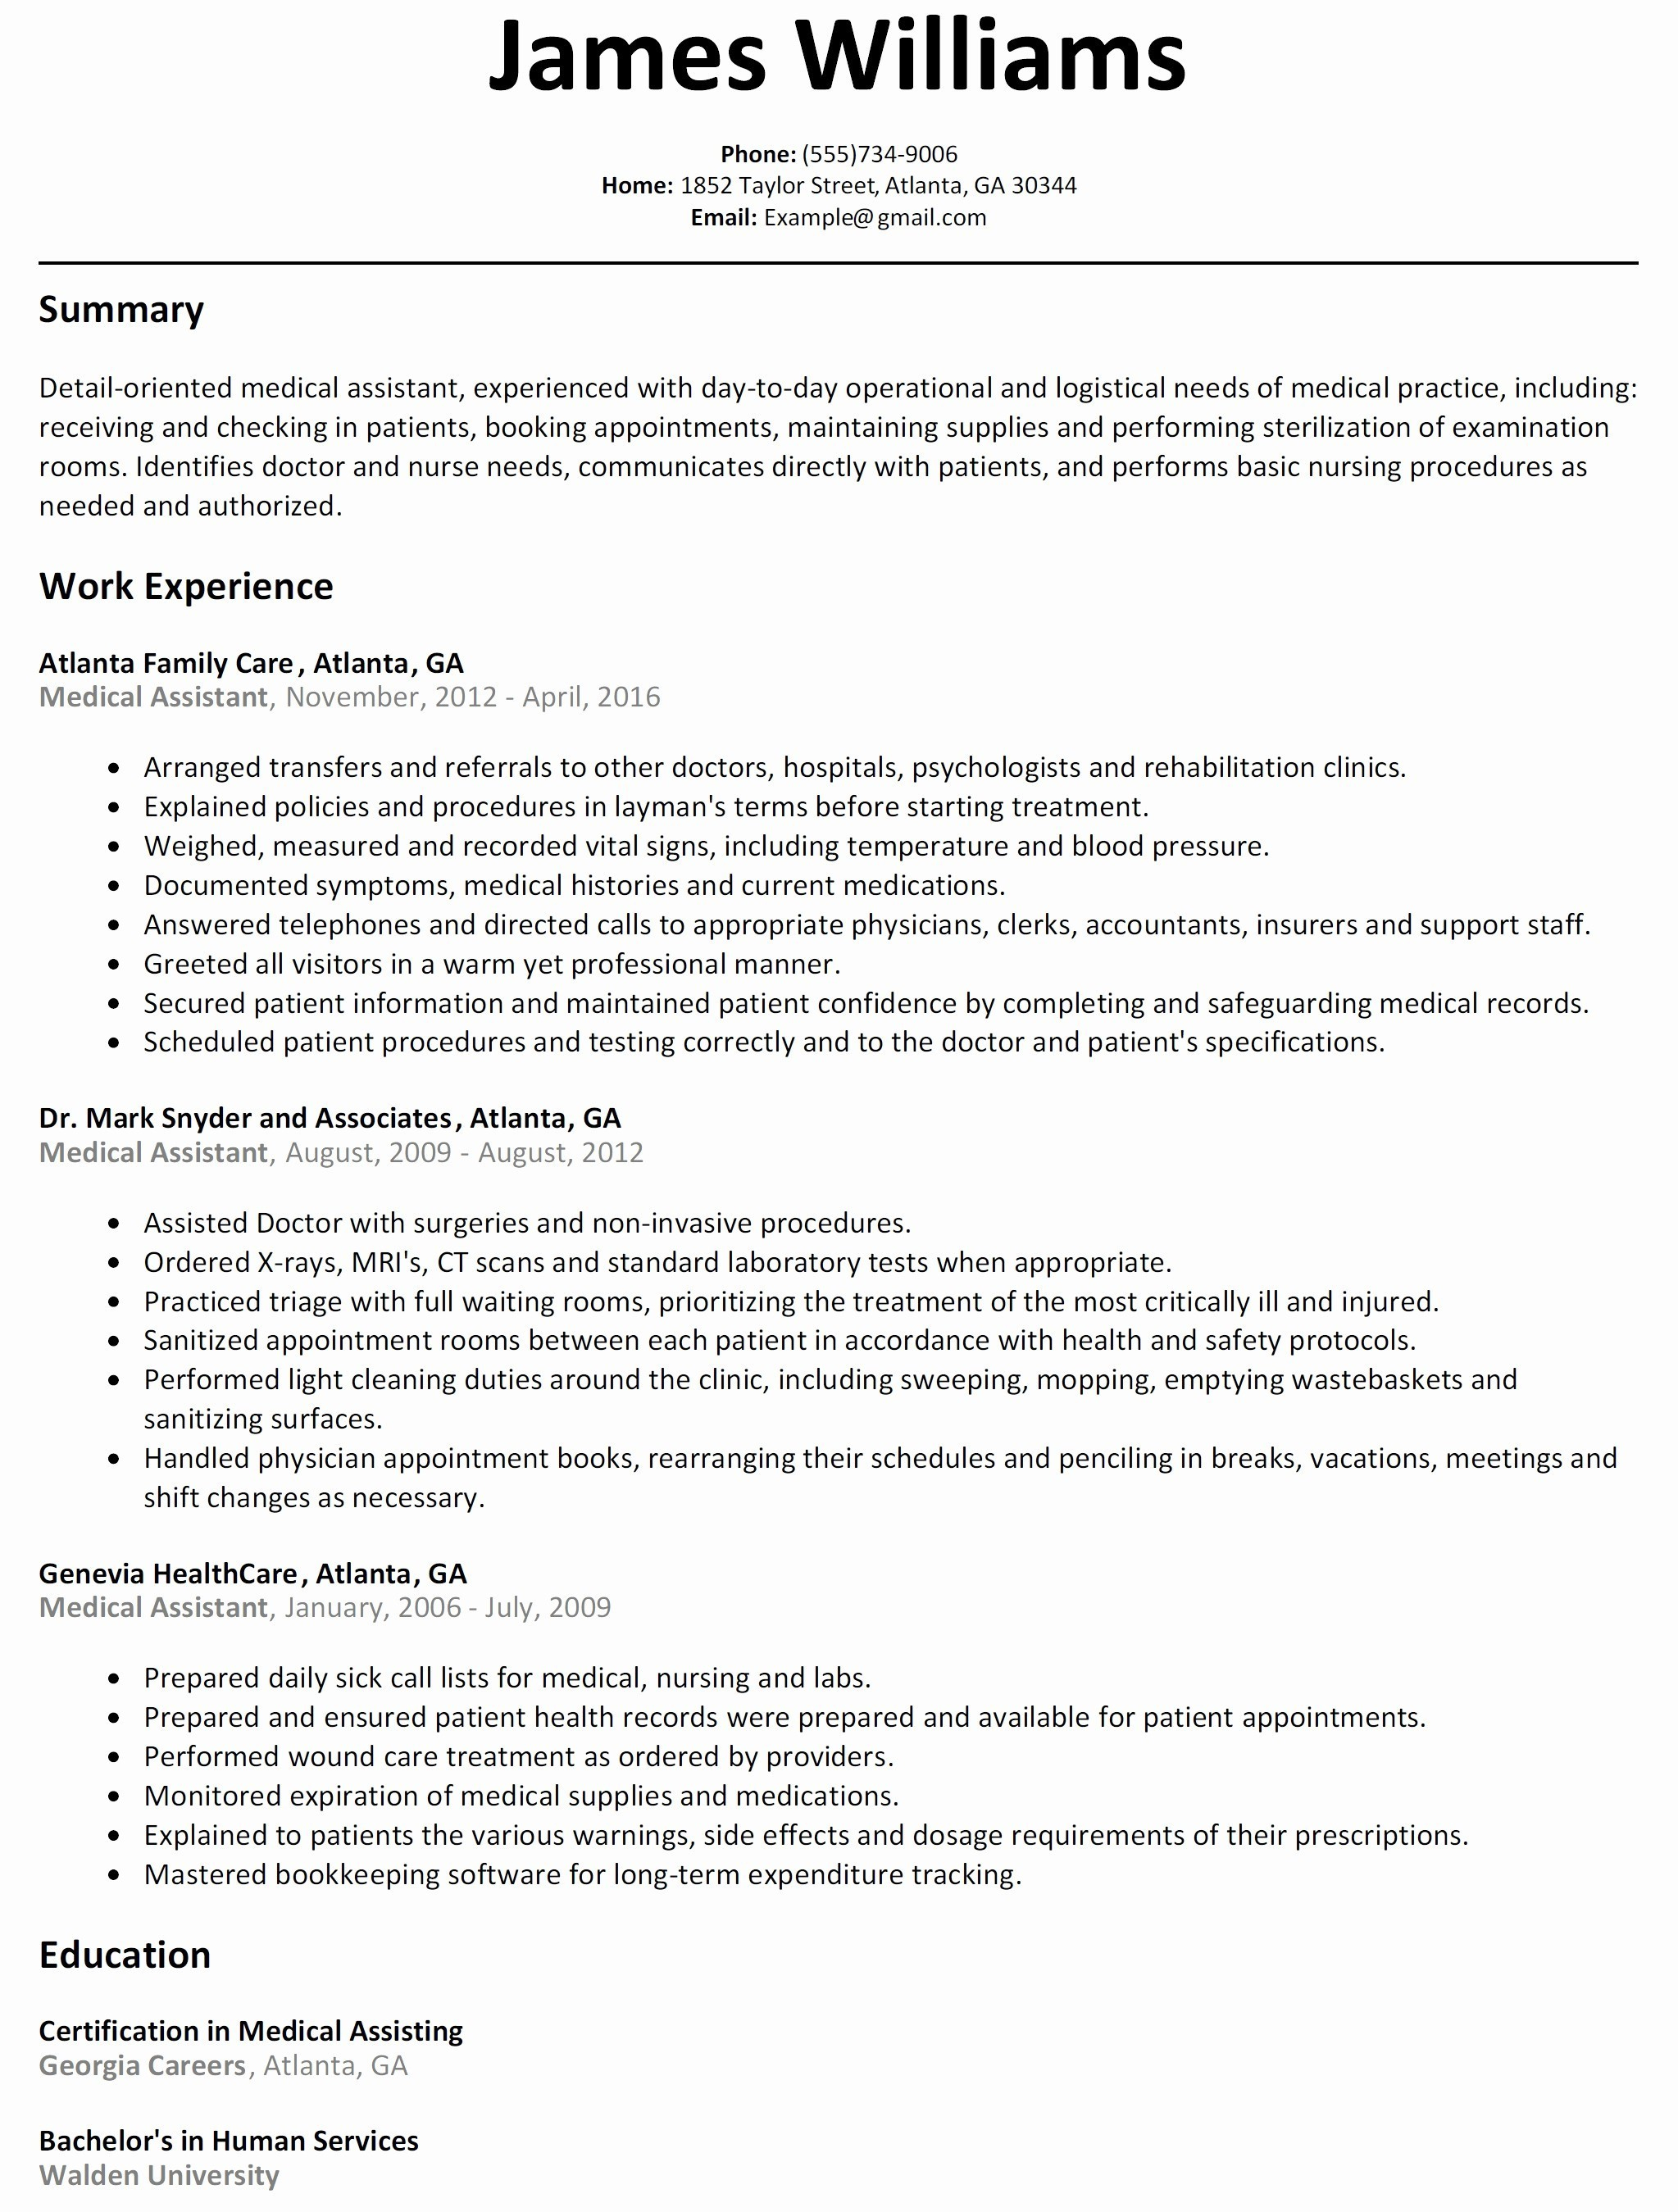 japanese resume template example-resume pronunciation in american english awesome example japanese resume unique best resume template free word new 15-l